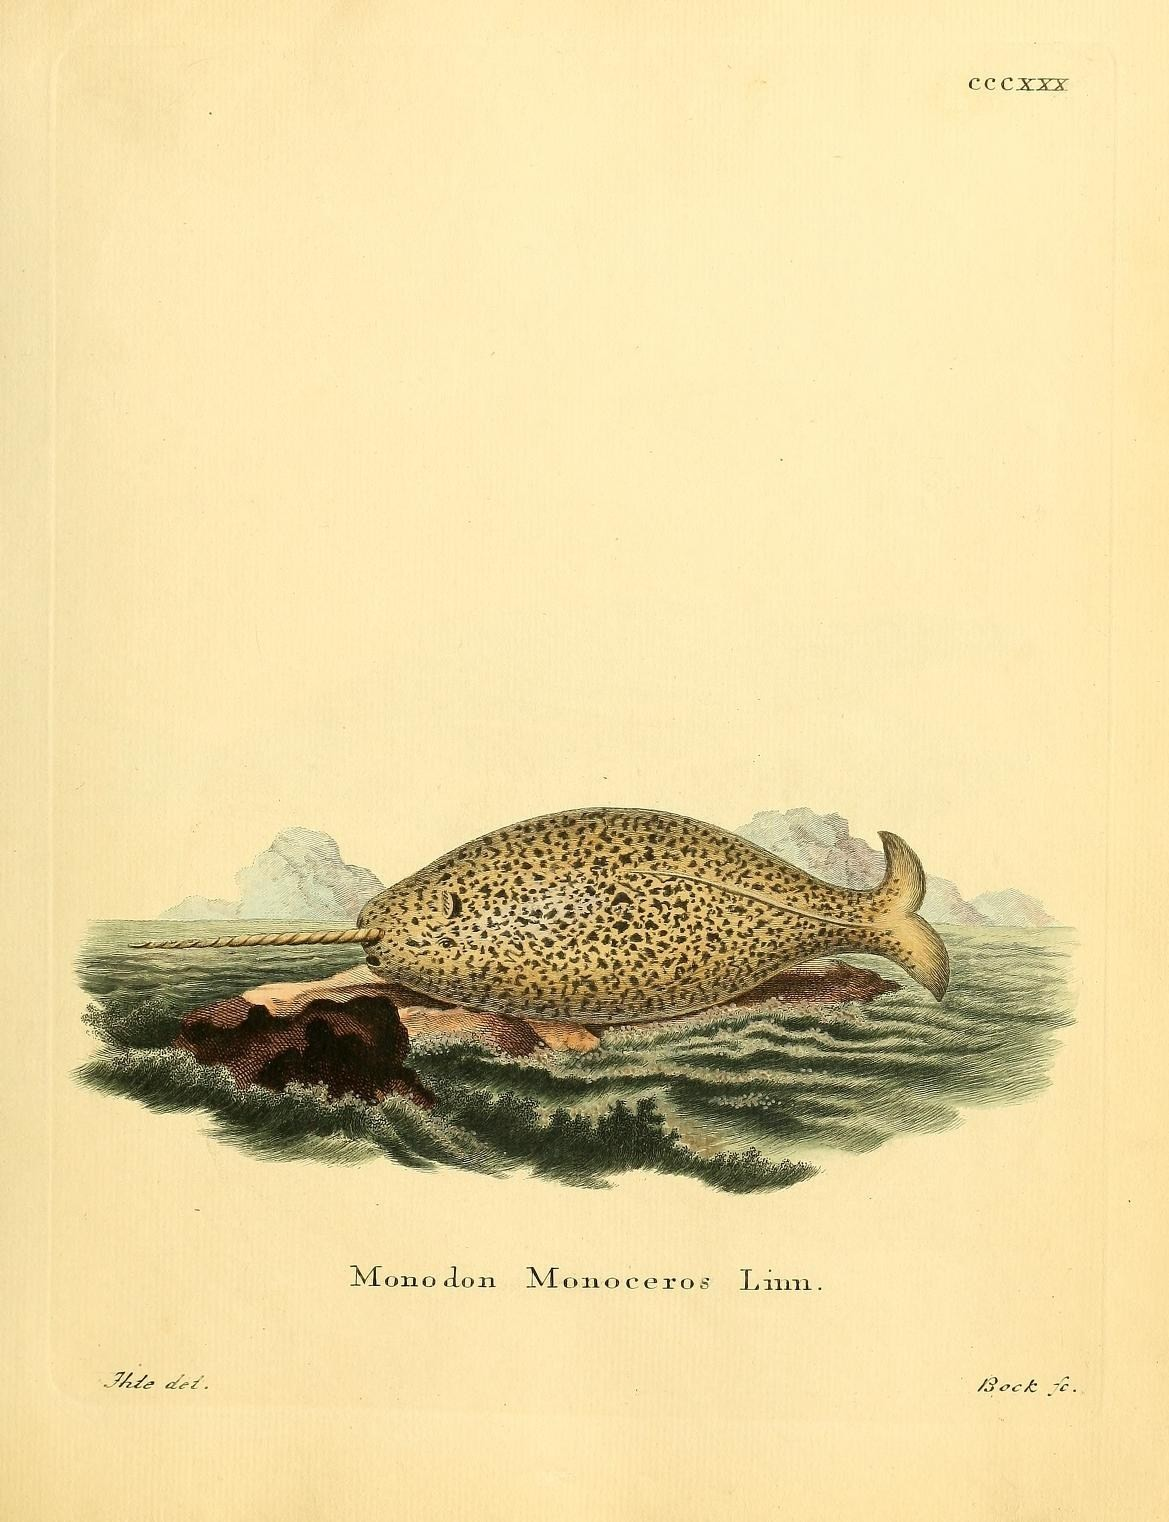 Image of Narwhal